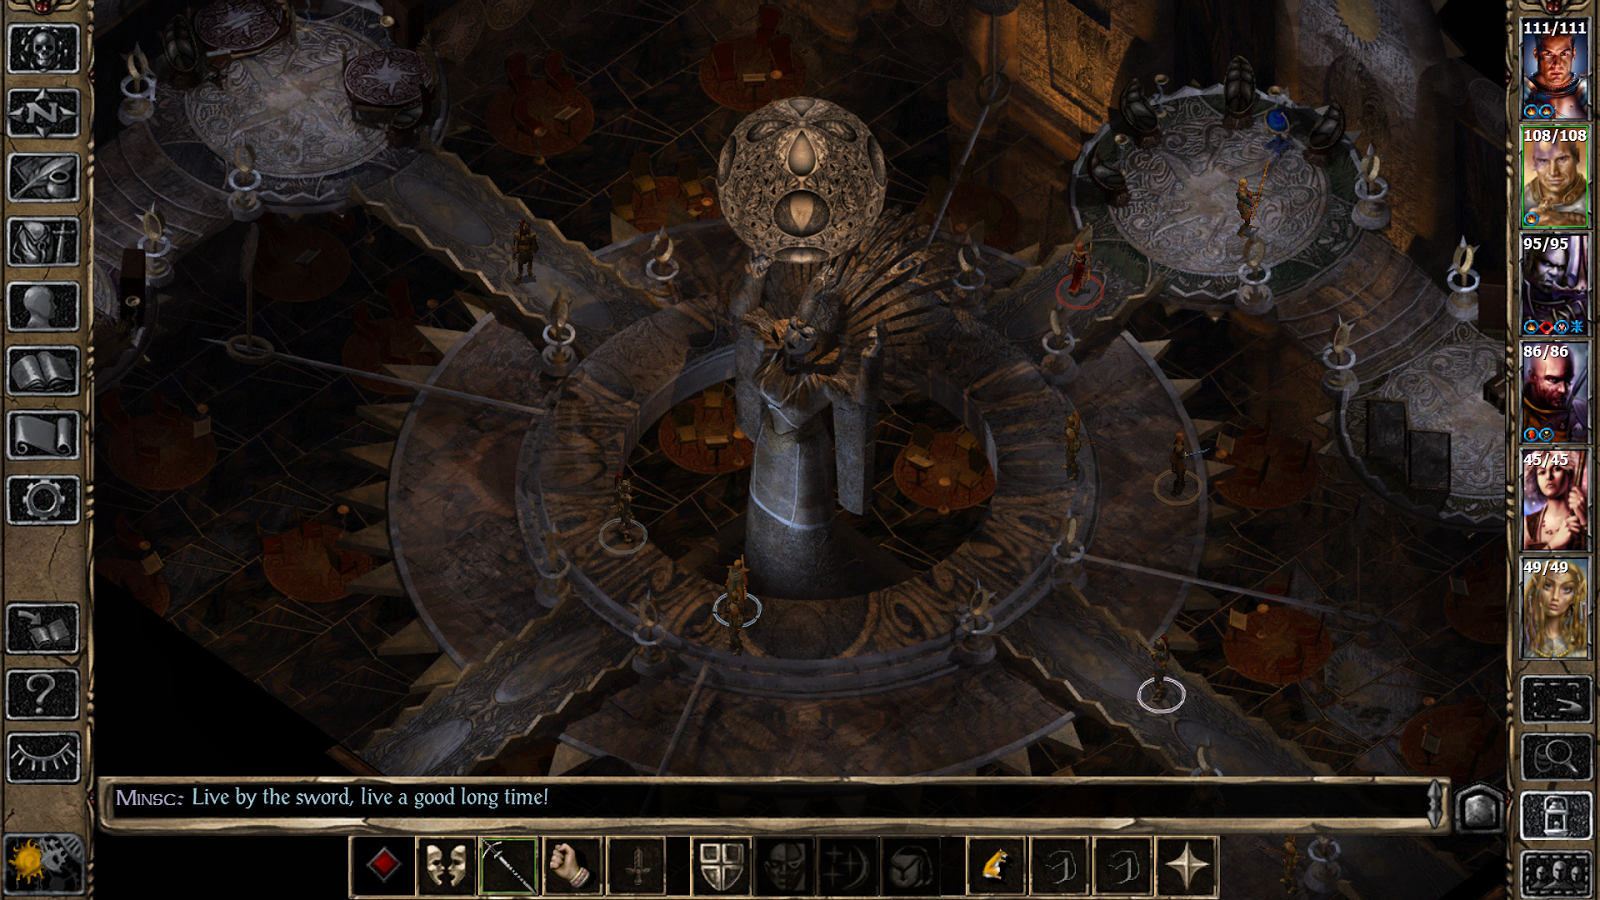 Baldur's Gate II Screenshot 2